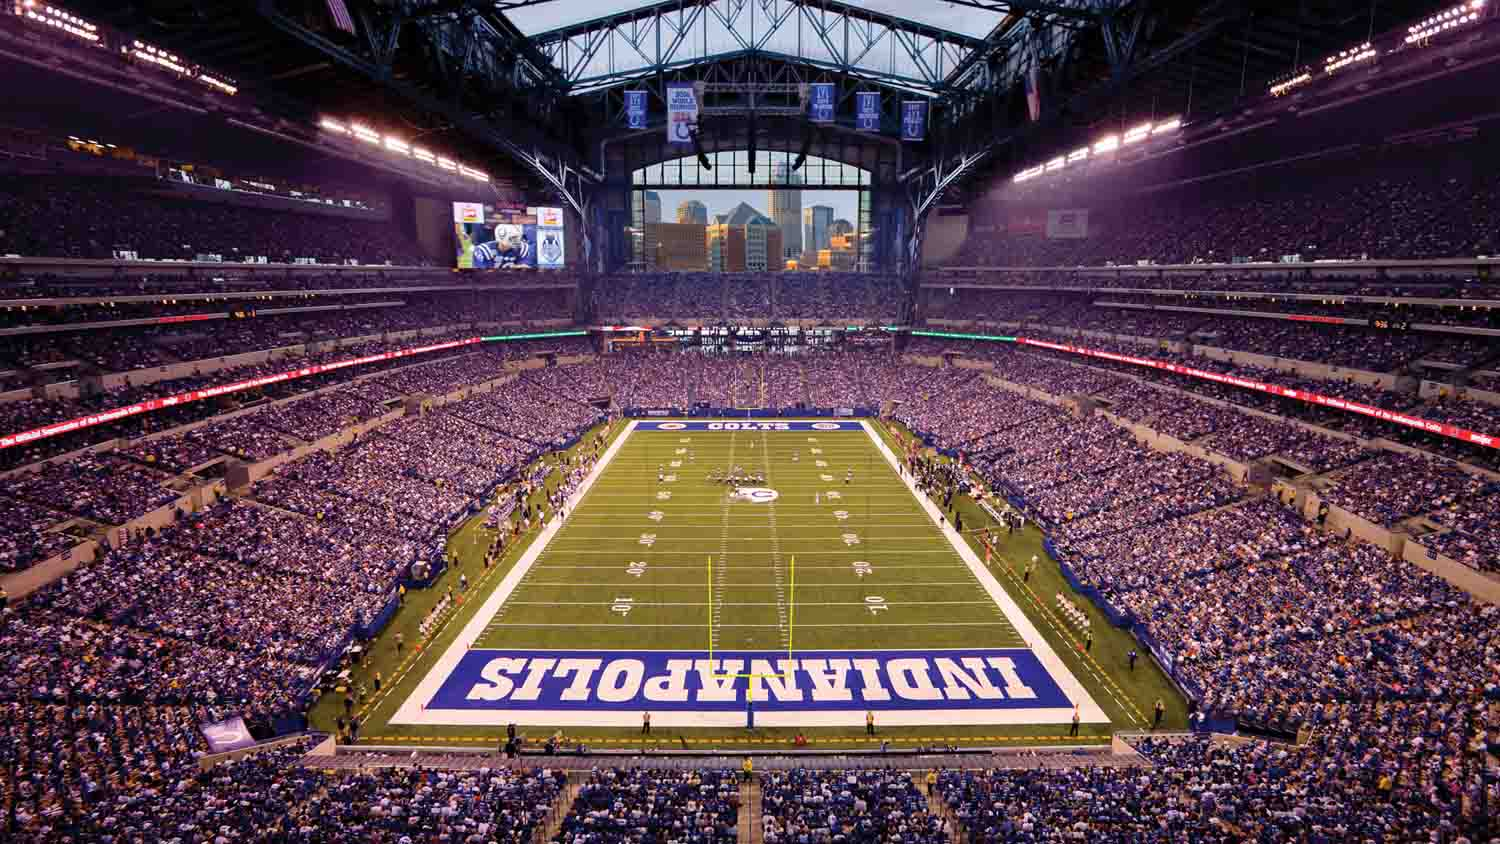 Lucas oil stadium 2